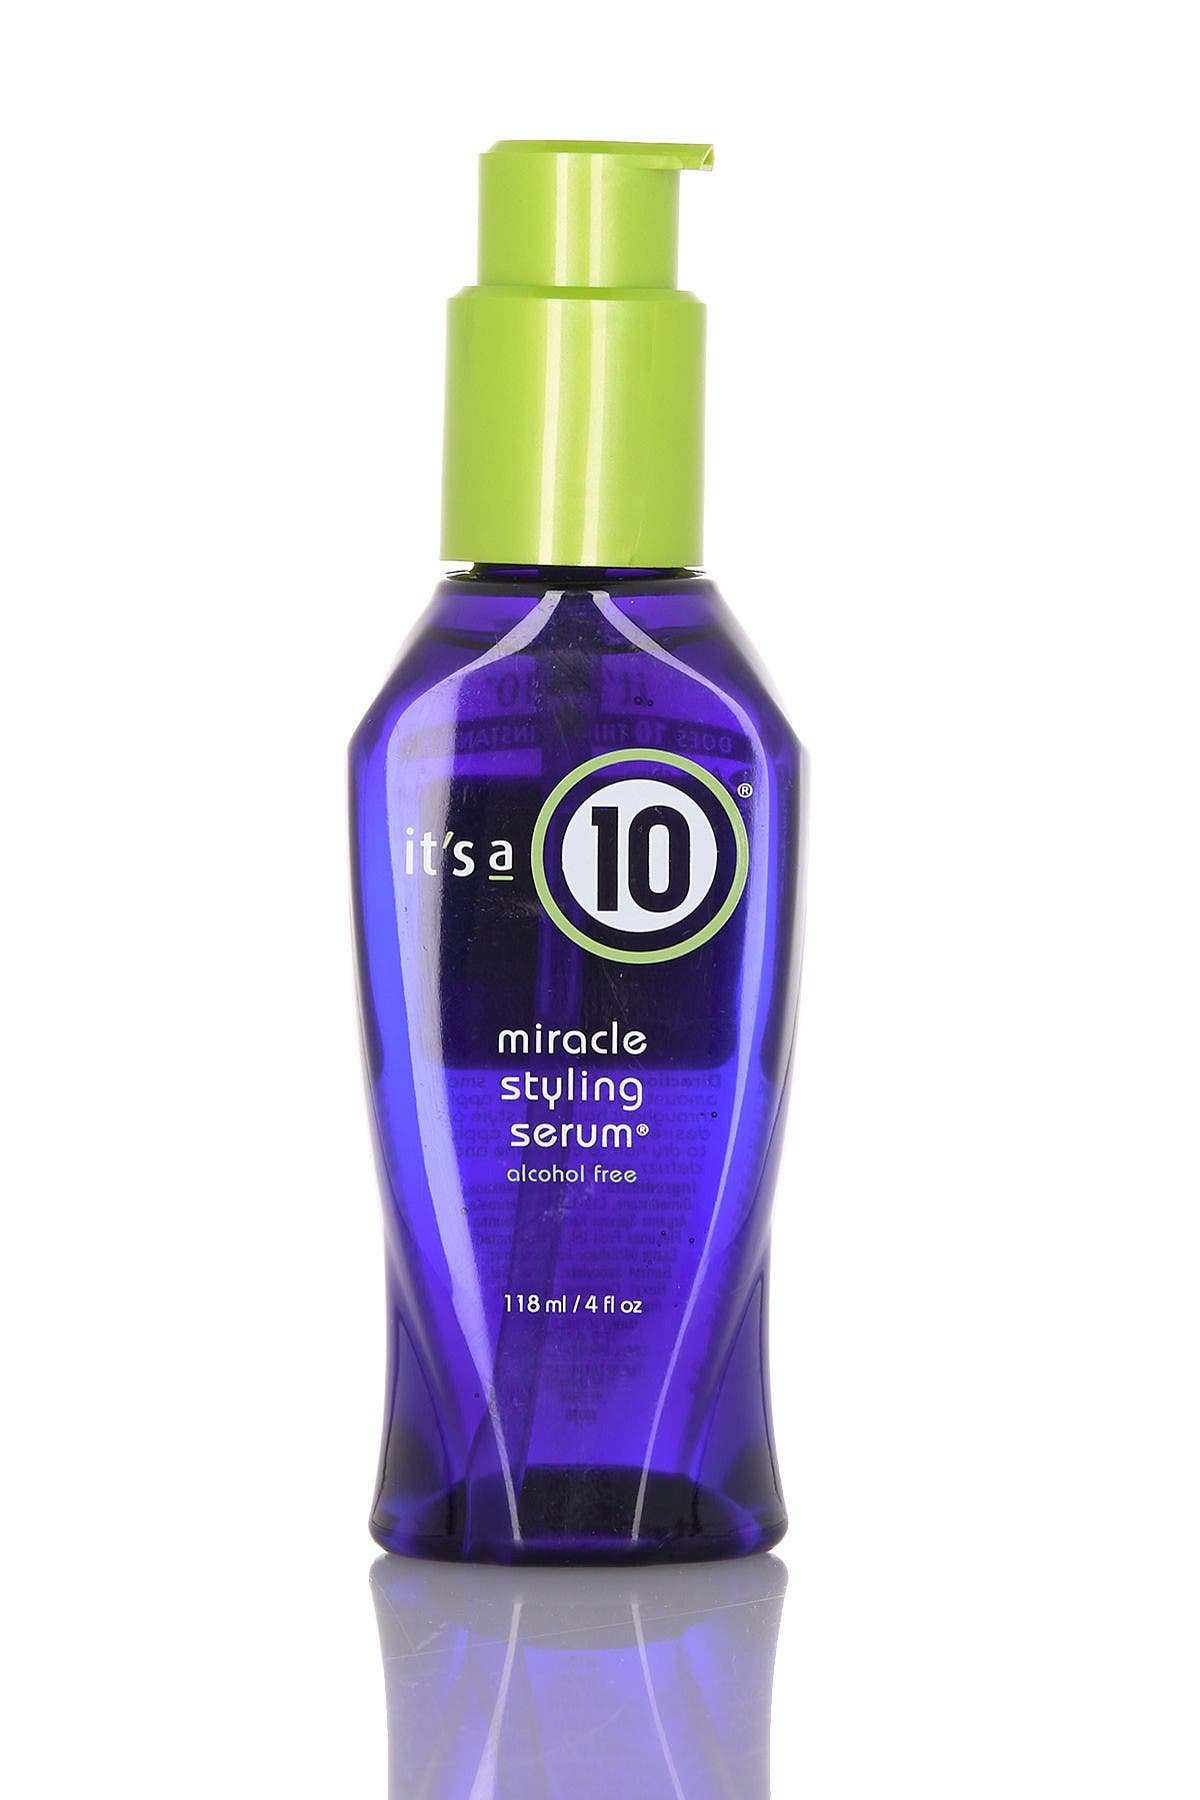 Image of ITS A 10 Miracle Styling Serum - 4 oz